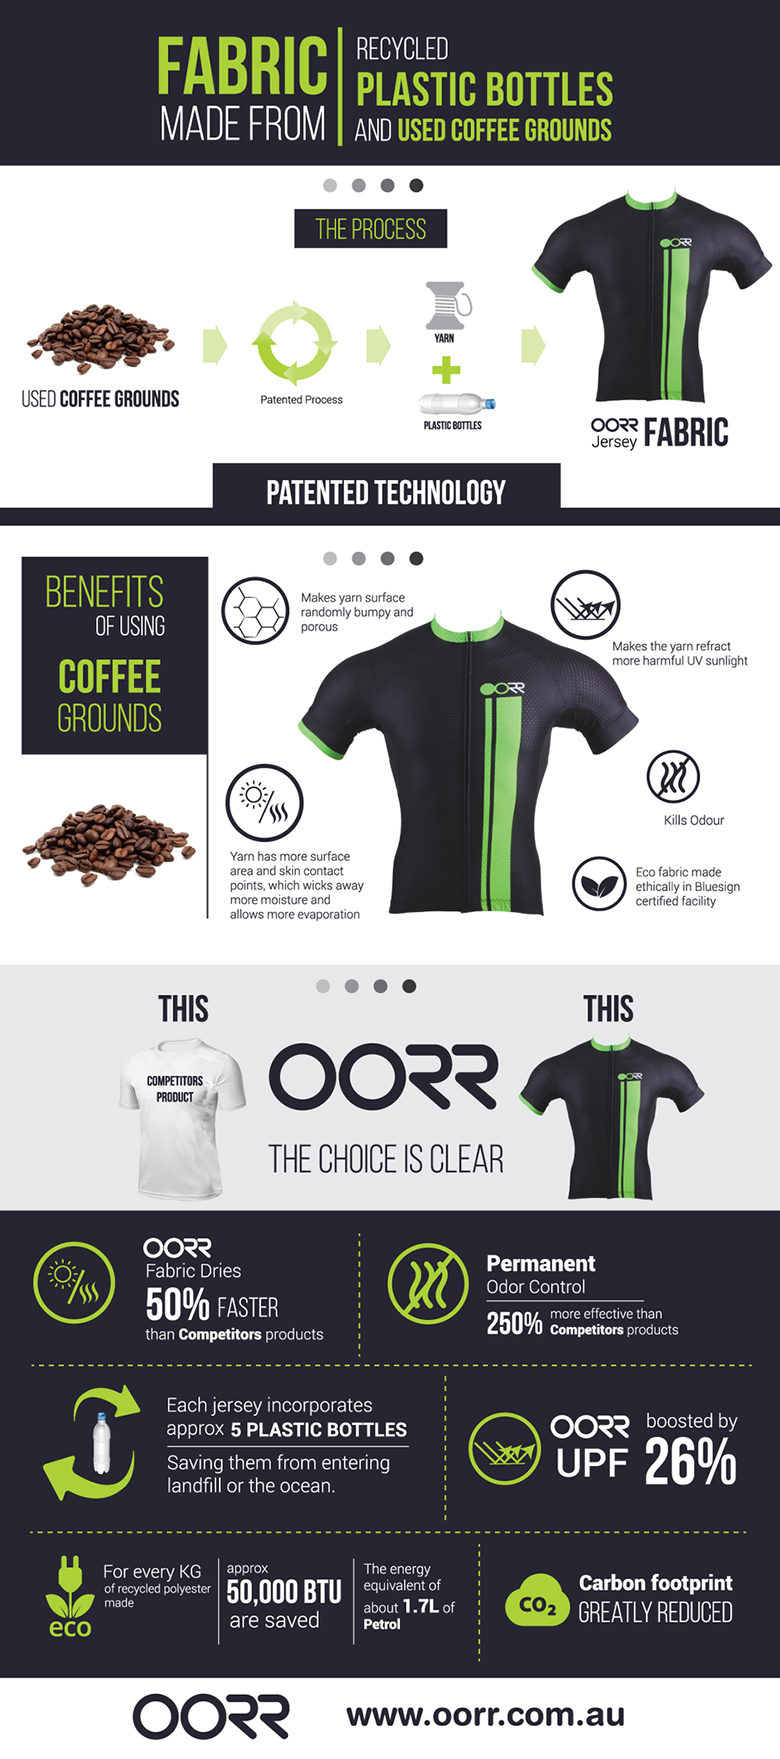 OORR-Coffee-Infographic-Updated_WEB_Image_2048x2048